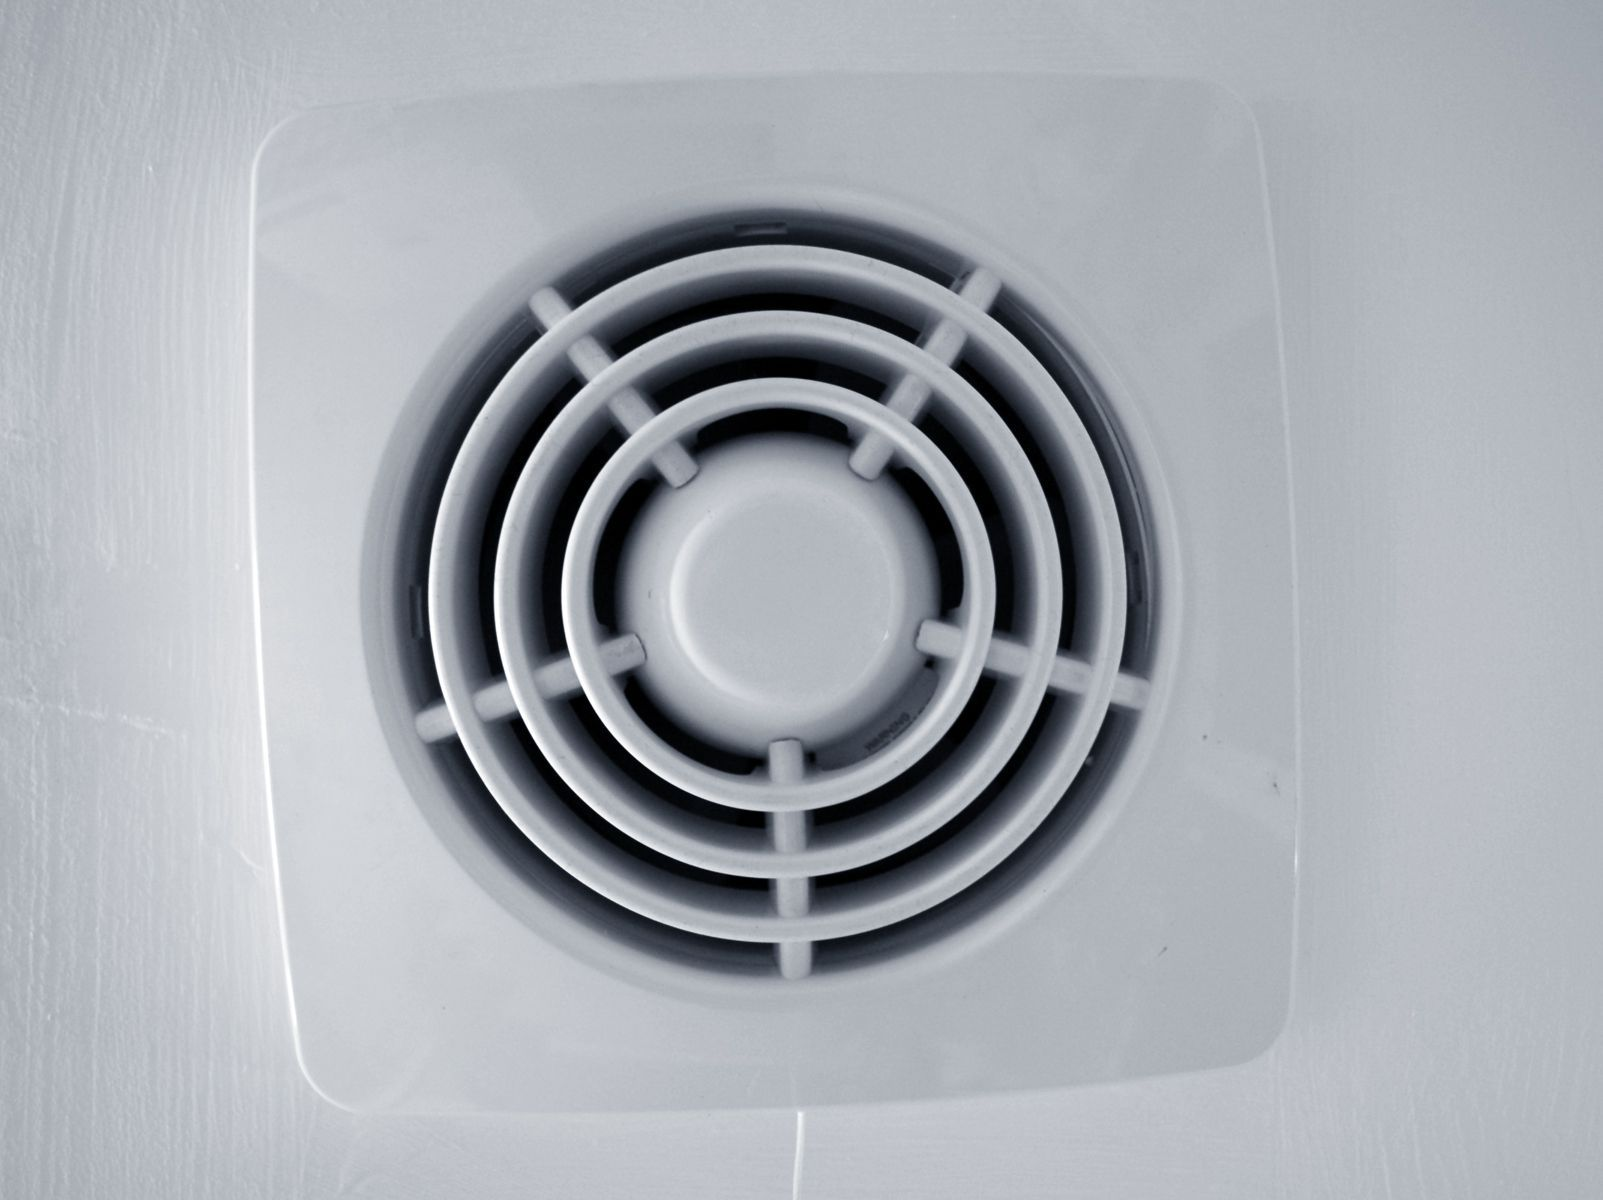 Position Your Bathroom Exhaust Fan Where It Is Most Useful Bathroom Exhaust Fan Mold In Bathroom